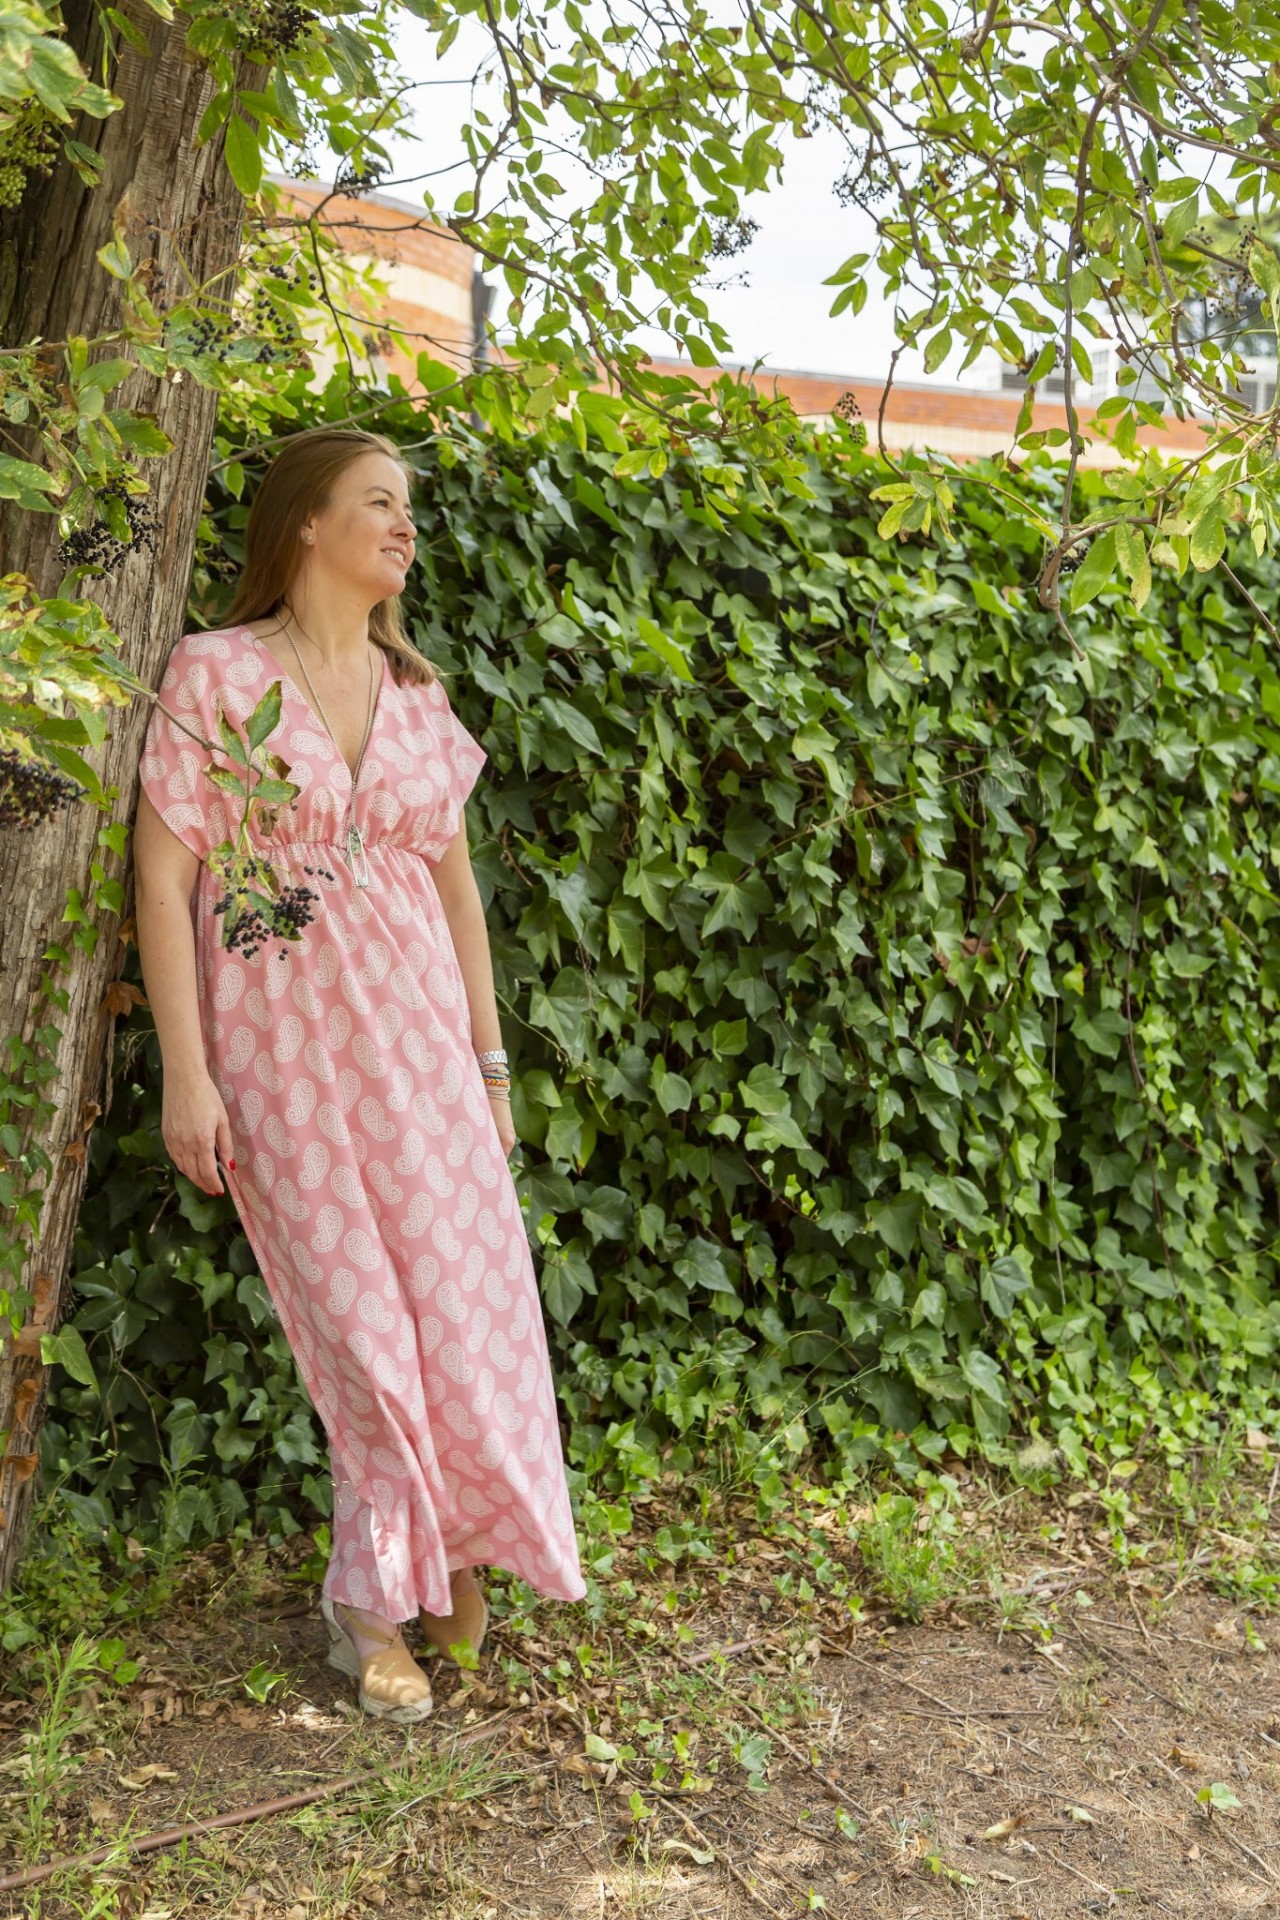 Vestido/ Dress Goa rosa/Light pink